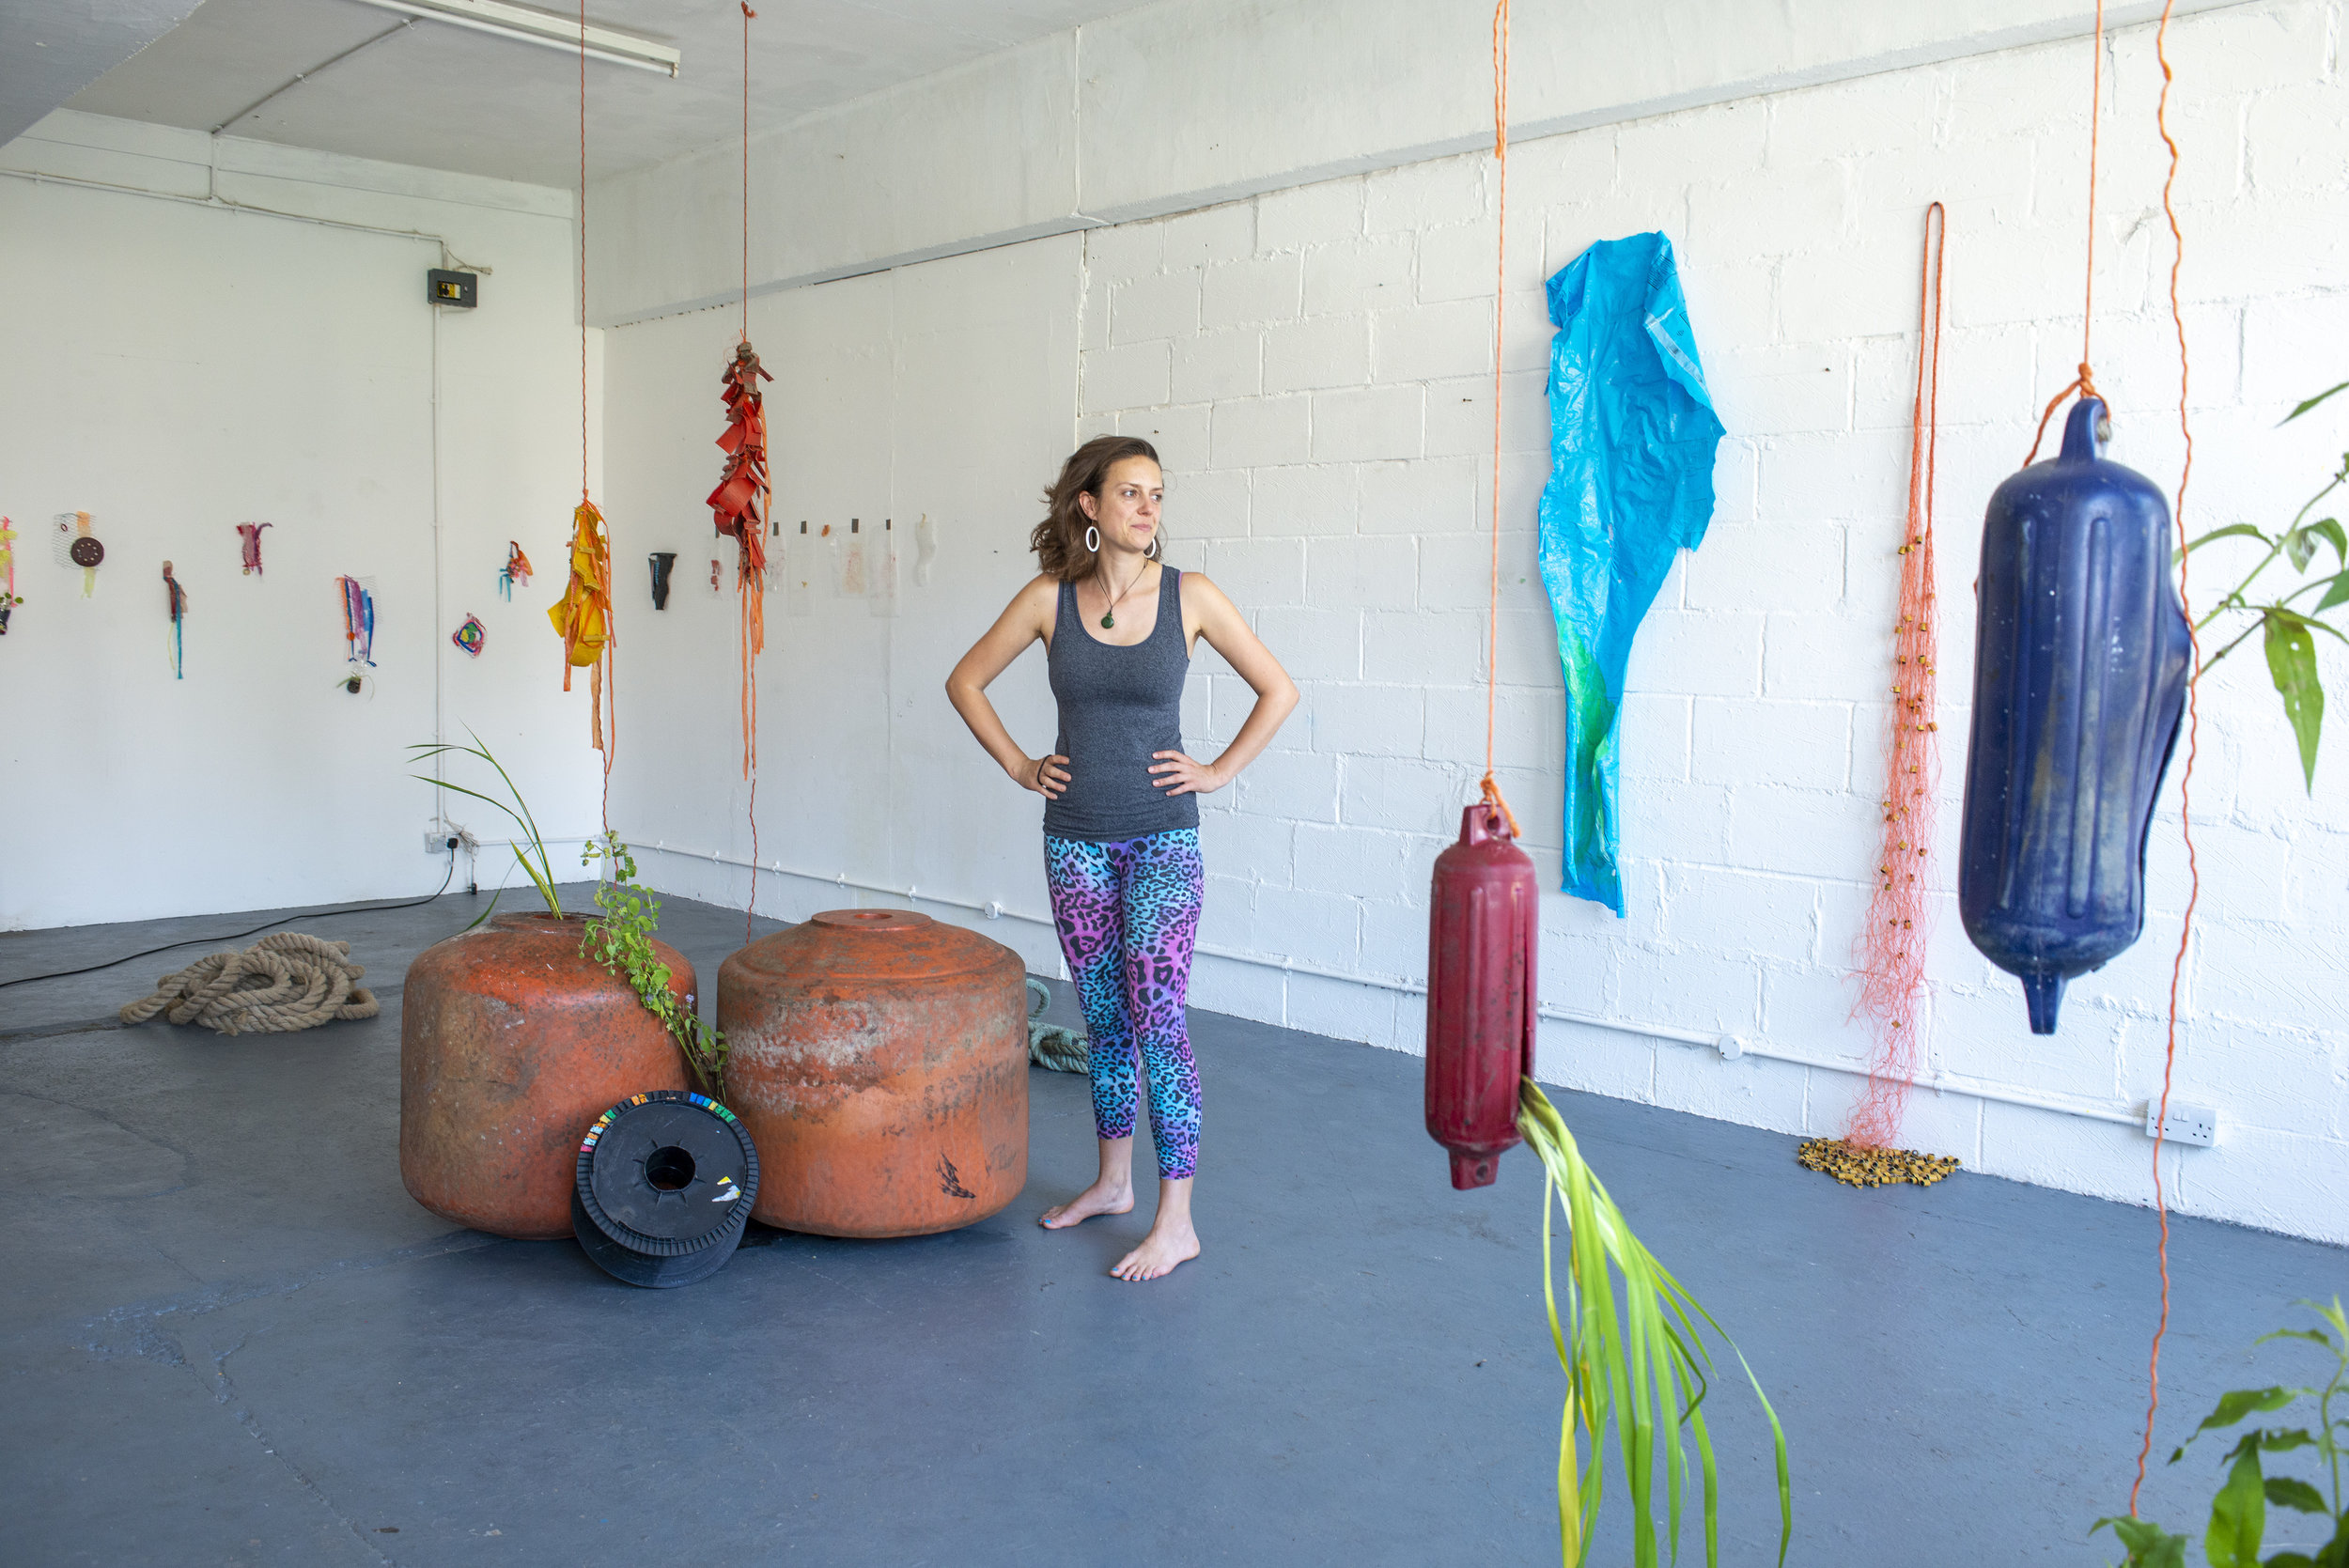 Camilla in Chisenhale Studio 4 at her work in progress show of Coast - Hertford Union Canal, August 2019